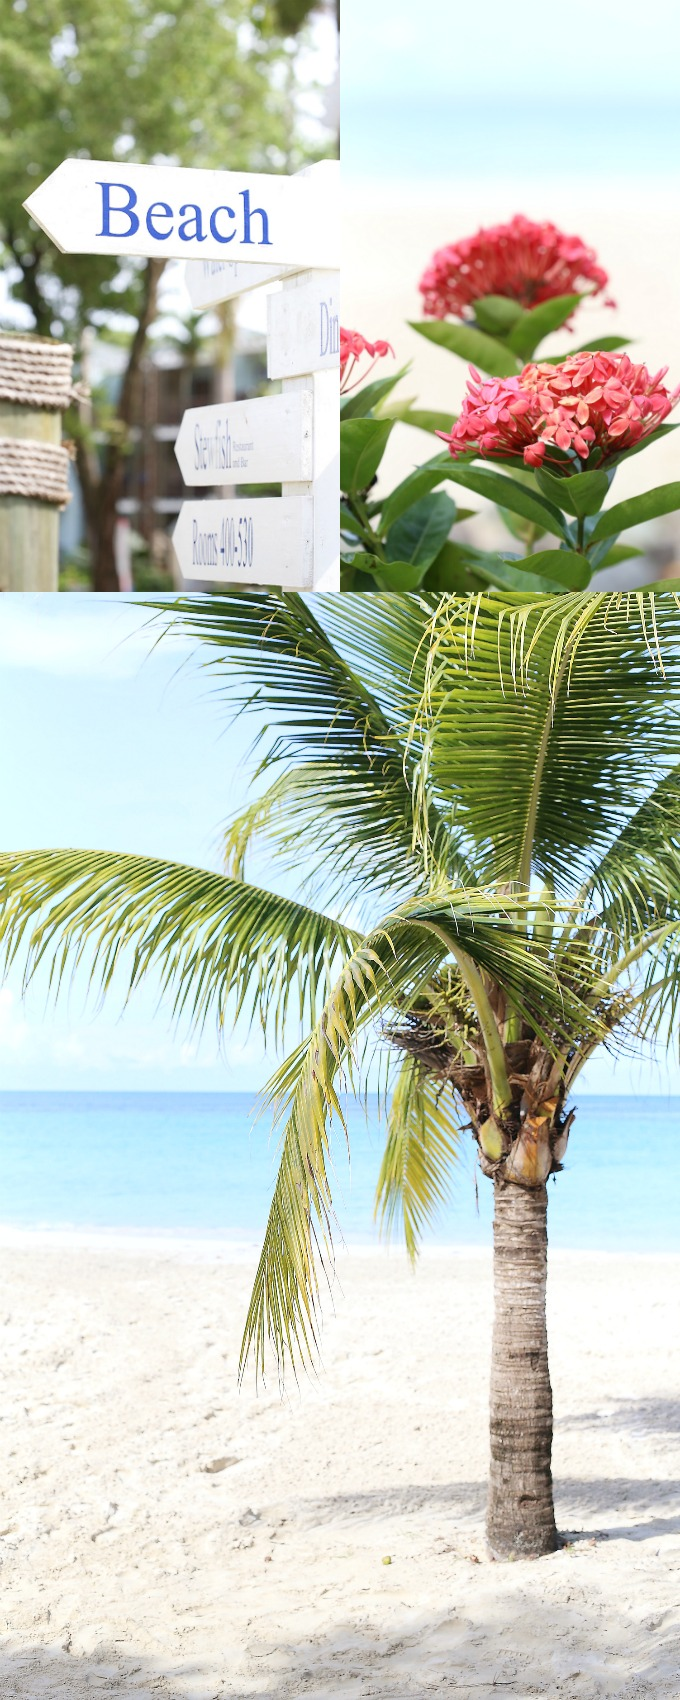 10 Reasons to Stay at Beaches Negril Jamaica 1